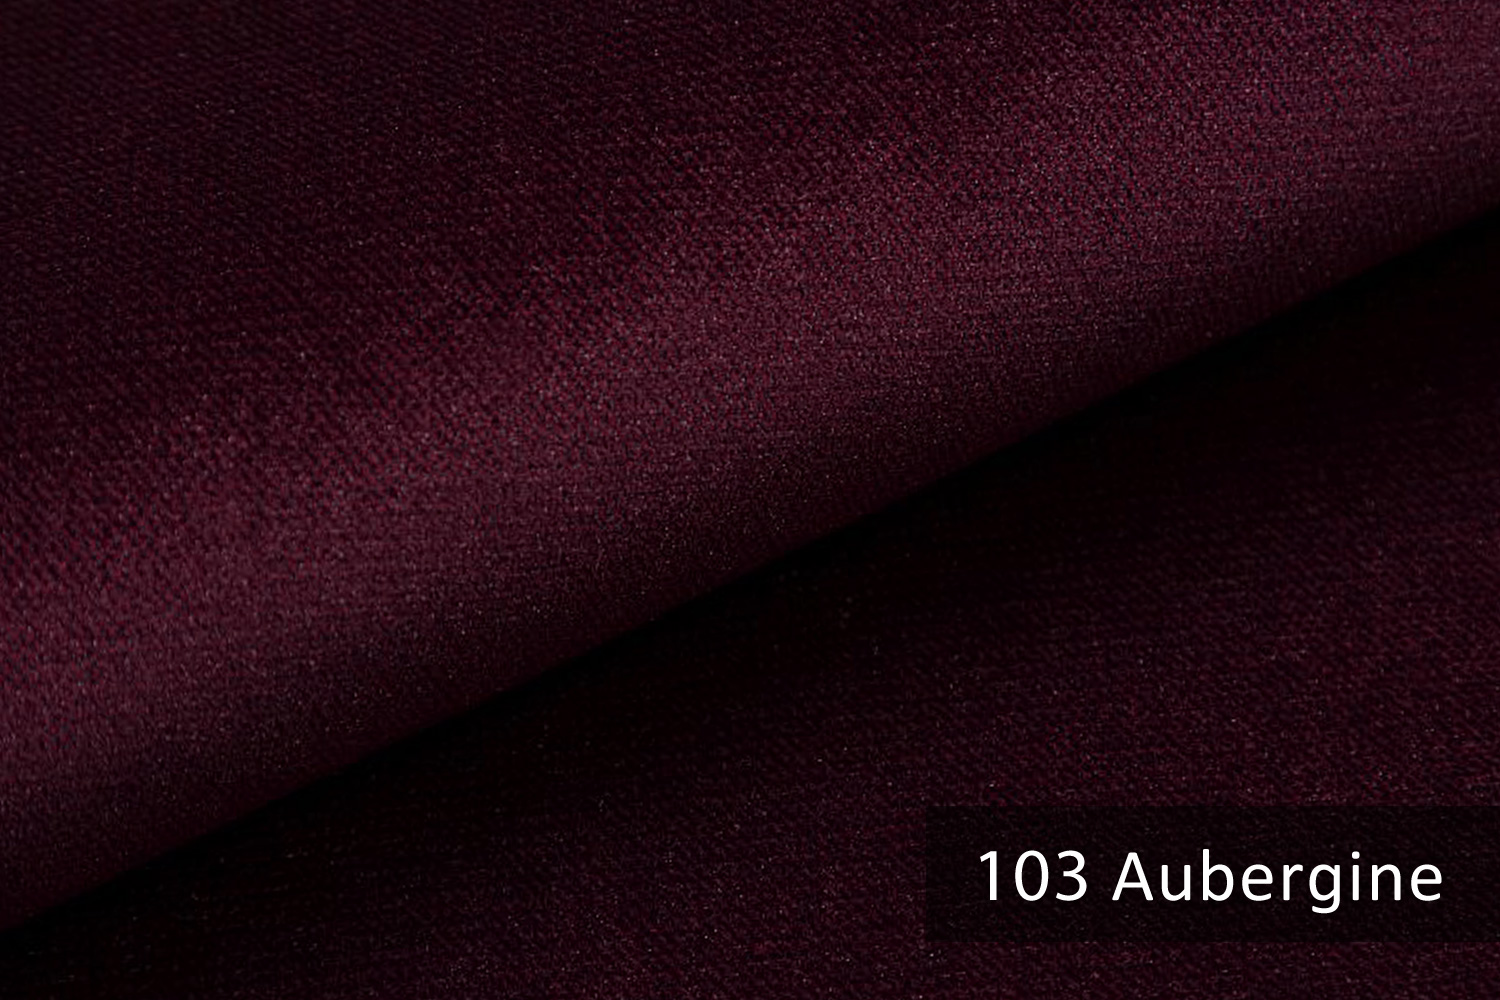 novely passau samtig weicher chenille m belstoff farbe 103 aubergine novely. Black Bedroom Furniture Sets. Home Design Ideas